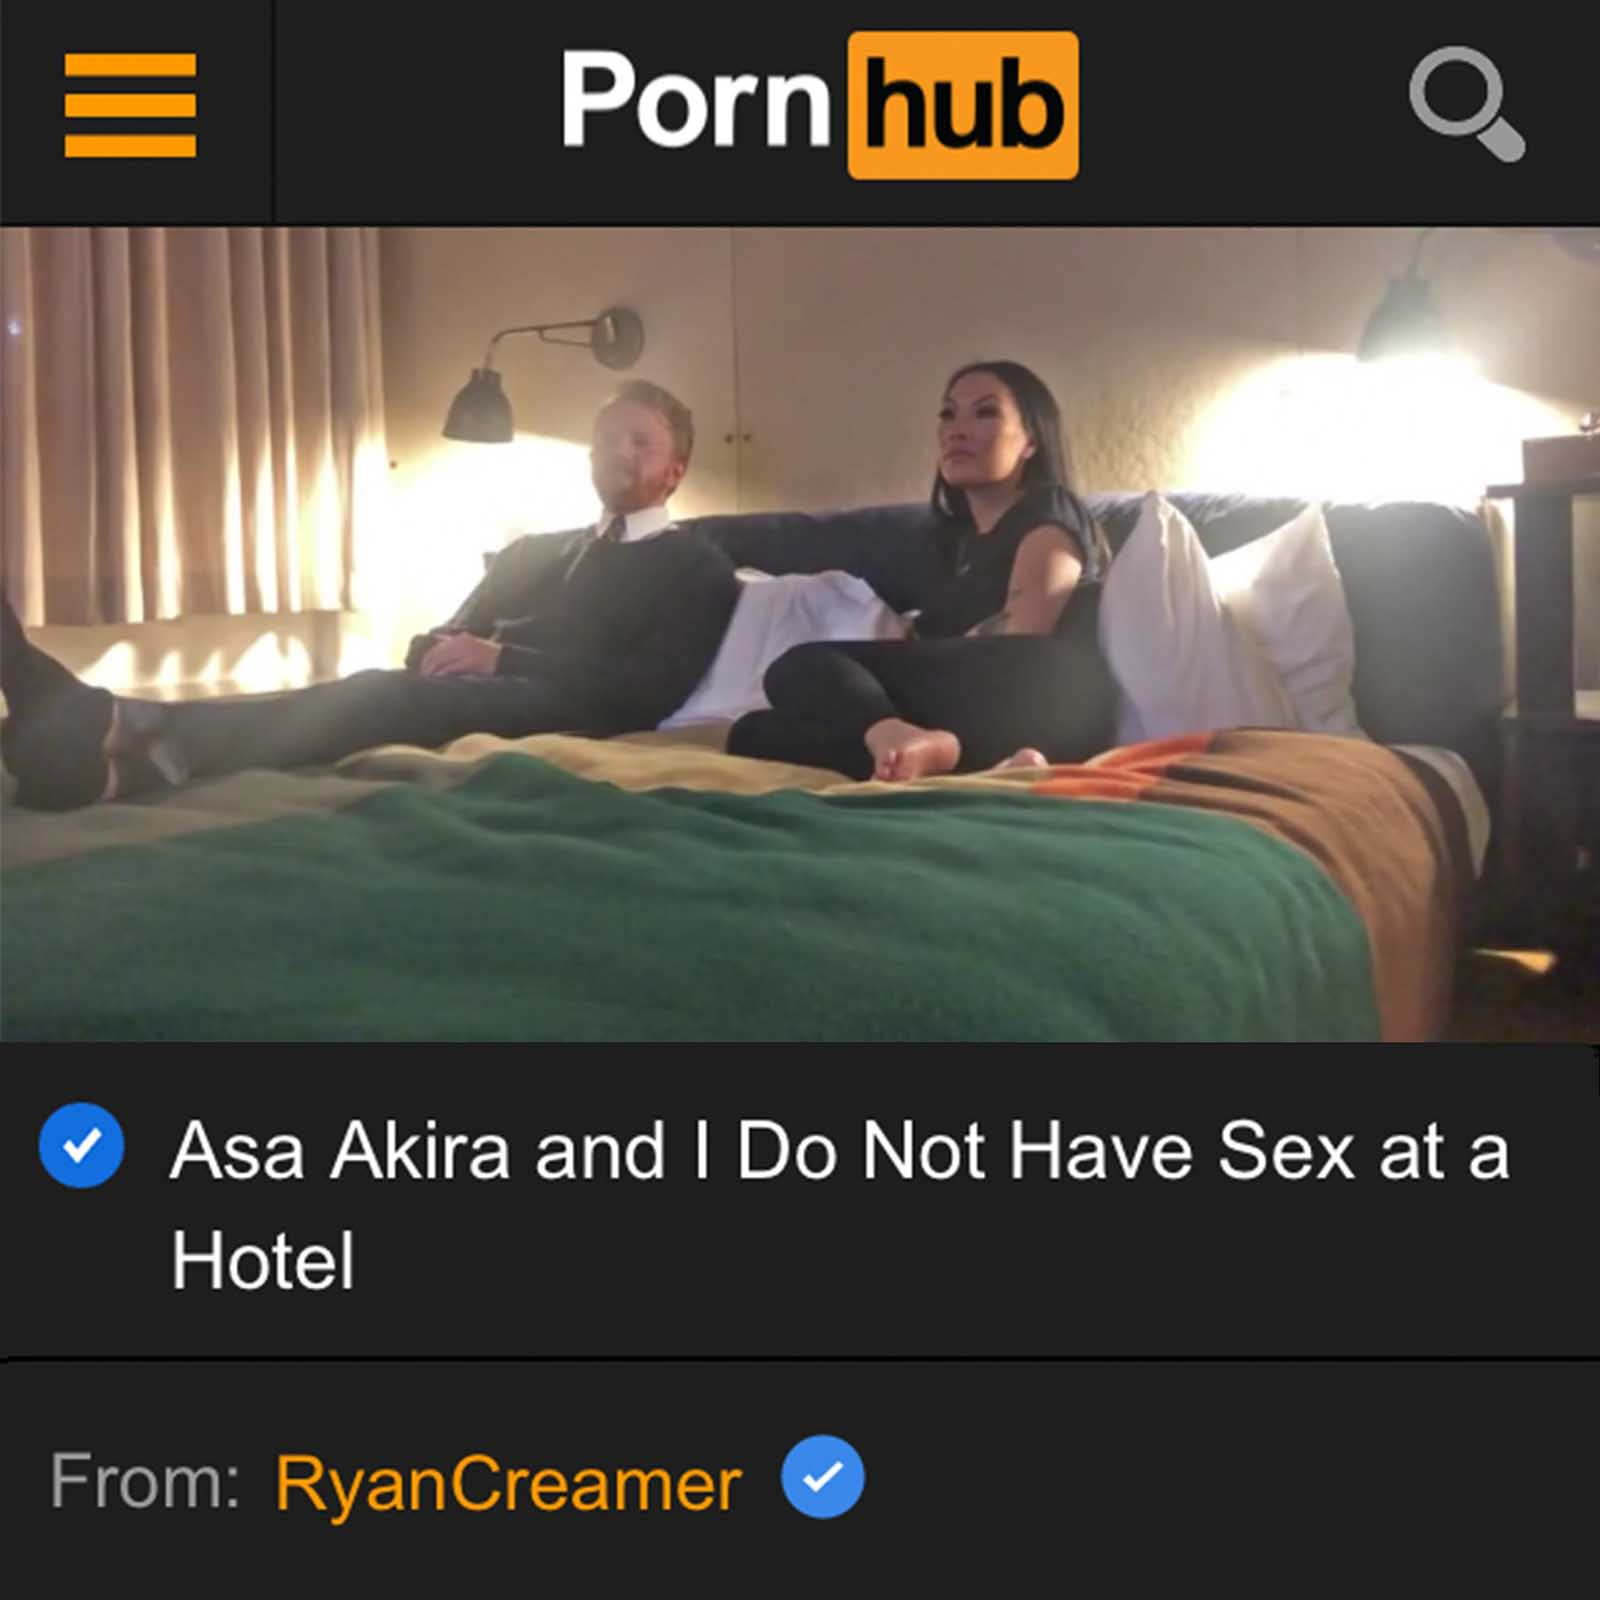 Pornhub: home to sex, boobs, dick, and wholesome content? It may sounds like a joke, but Ryan Creamer is changing the Pornhub game.